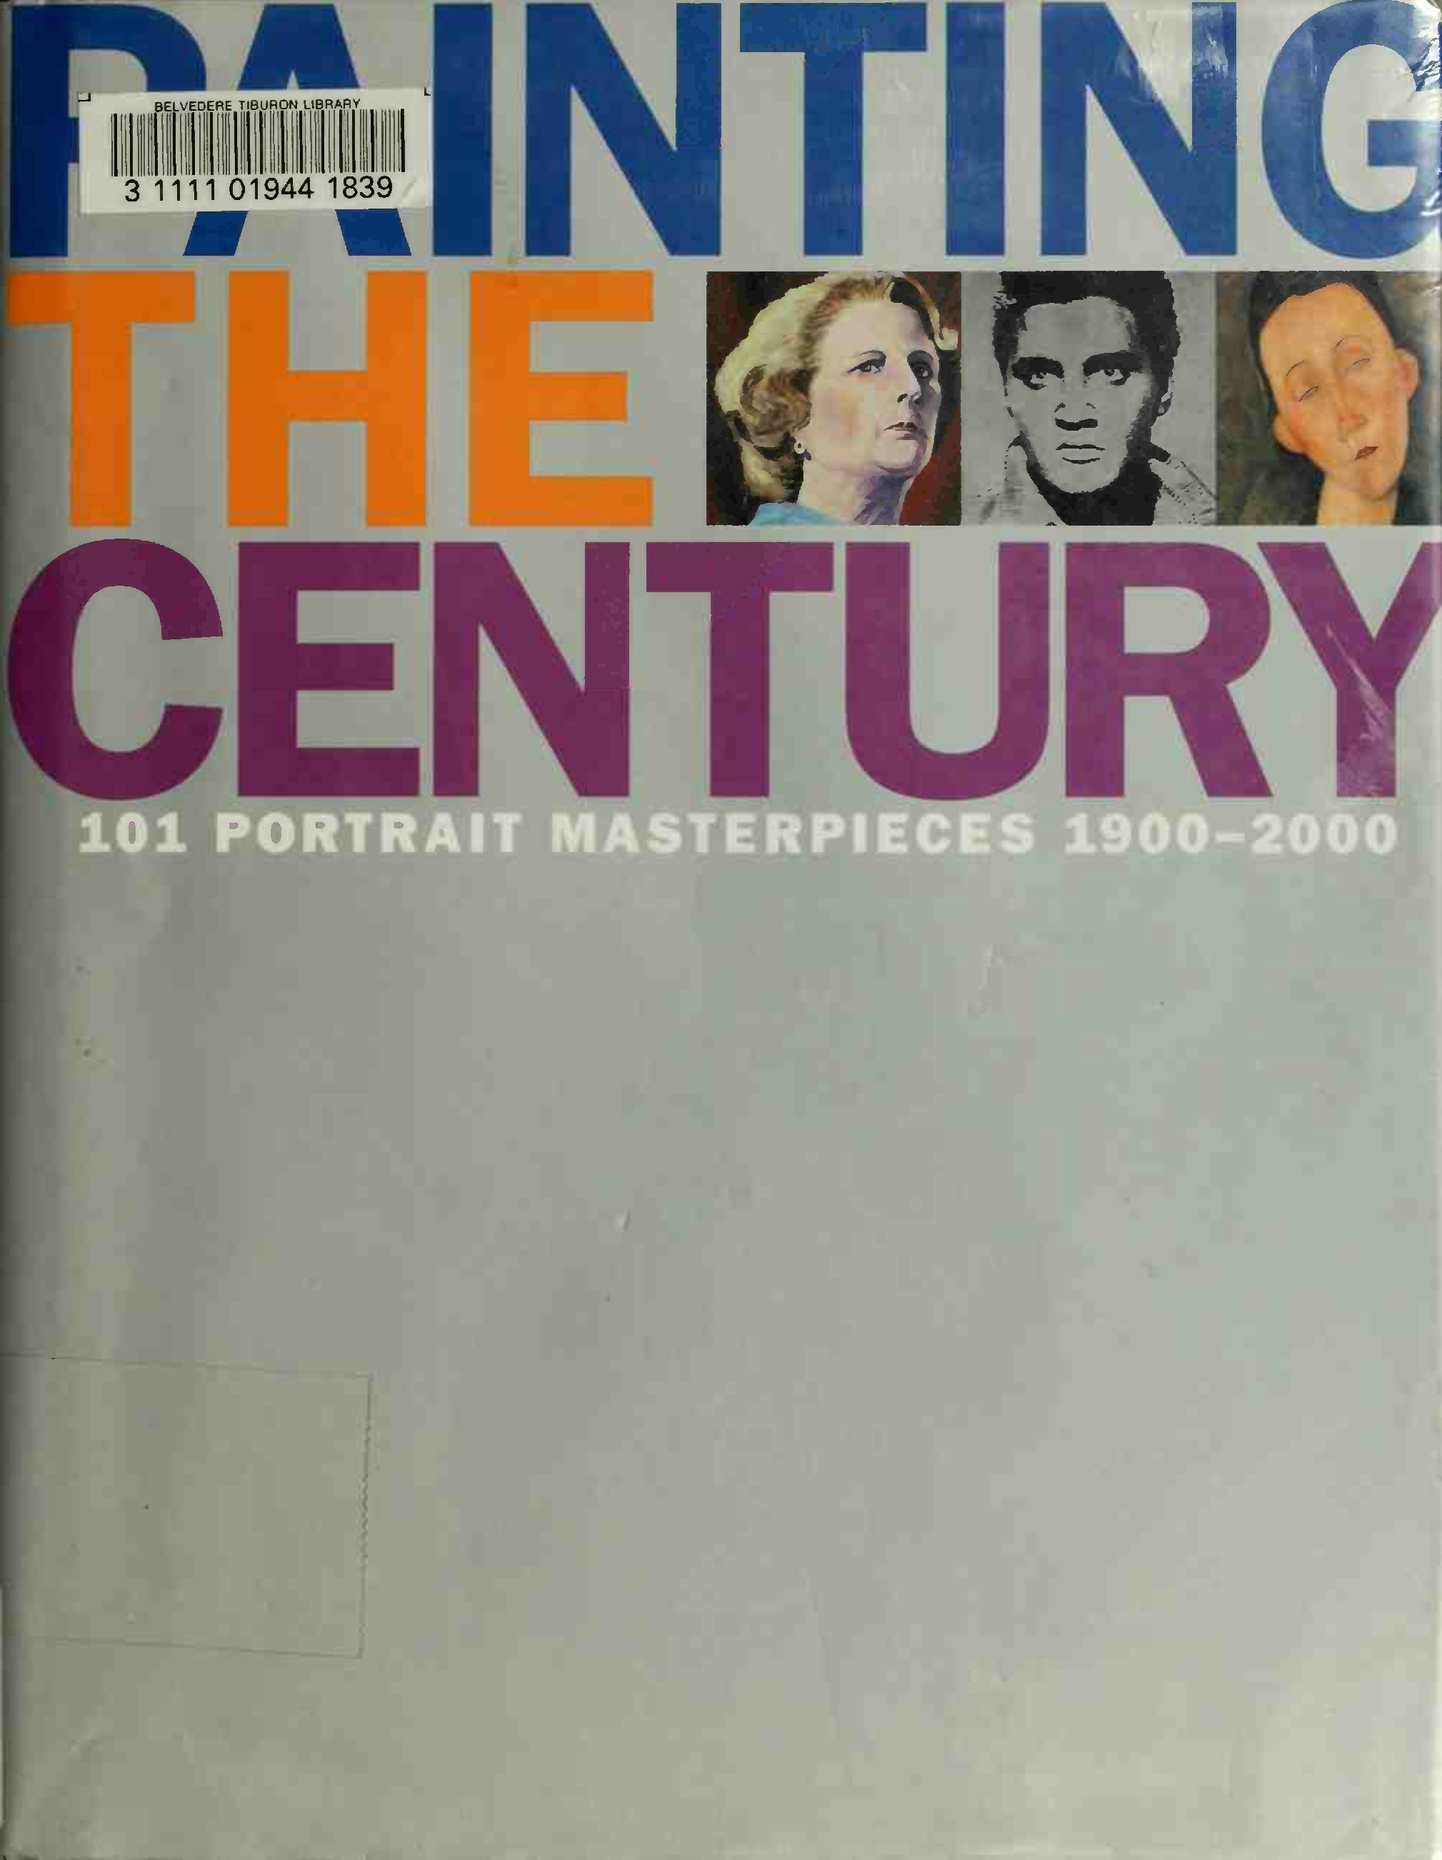 Arte Sacra Nigeria Limited Calaméo Painting The Century 101 Portrait Masterpieces Art Ebook